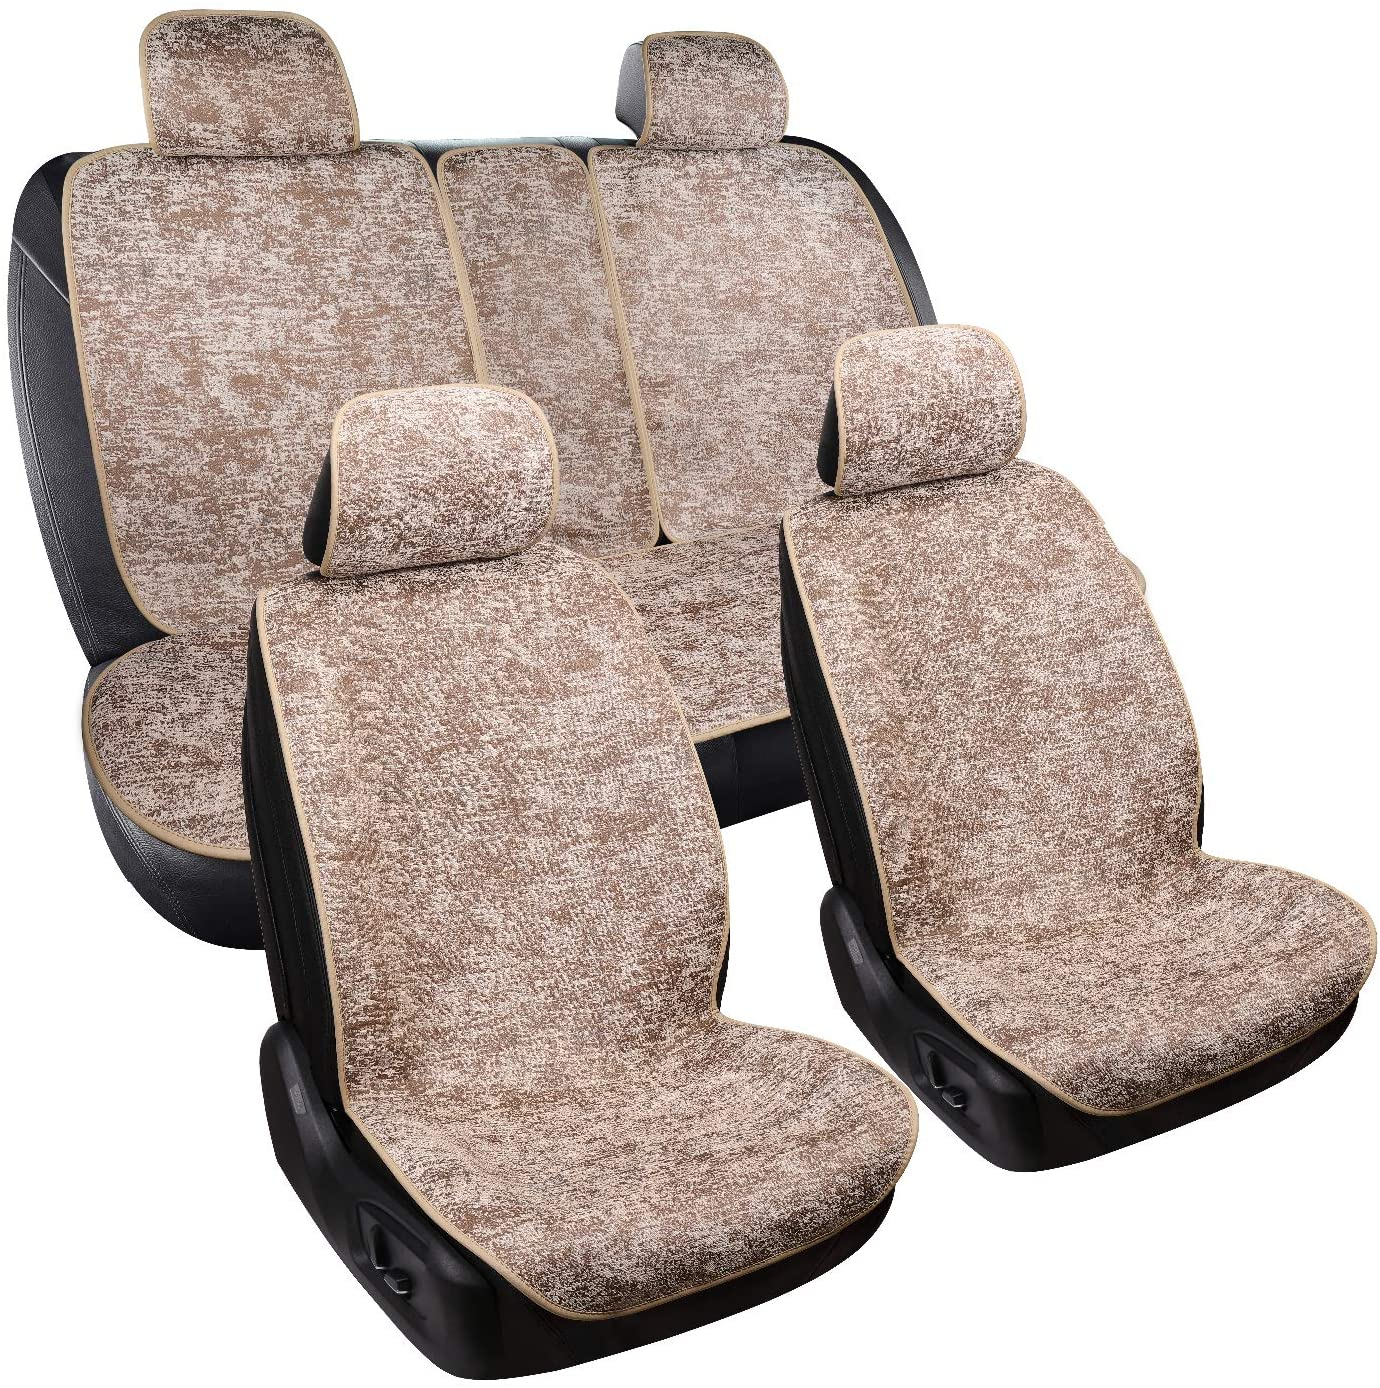 WFMJ Beige Chenille Fabric Vehicle Car Seat Covers 5 Seats Full Set Cushion Universal Fit for Toyota Dodge BMW Nissan Honda Jeep All Sedan Most SUV and Small Pick-Up Truck